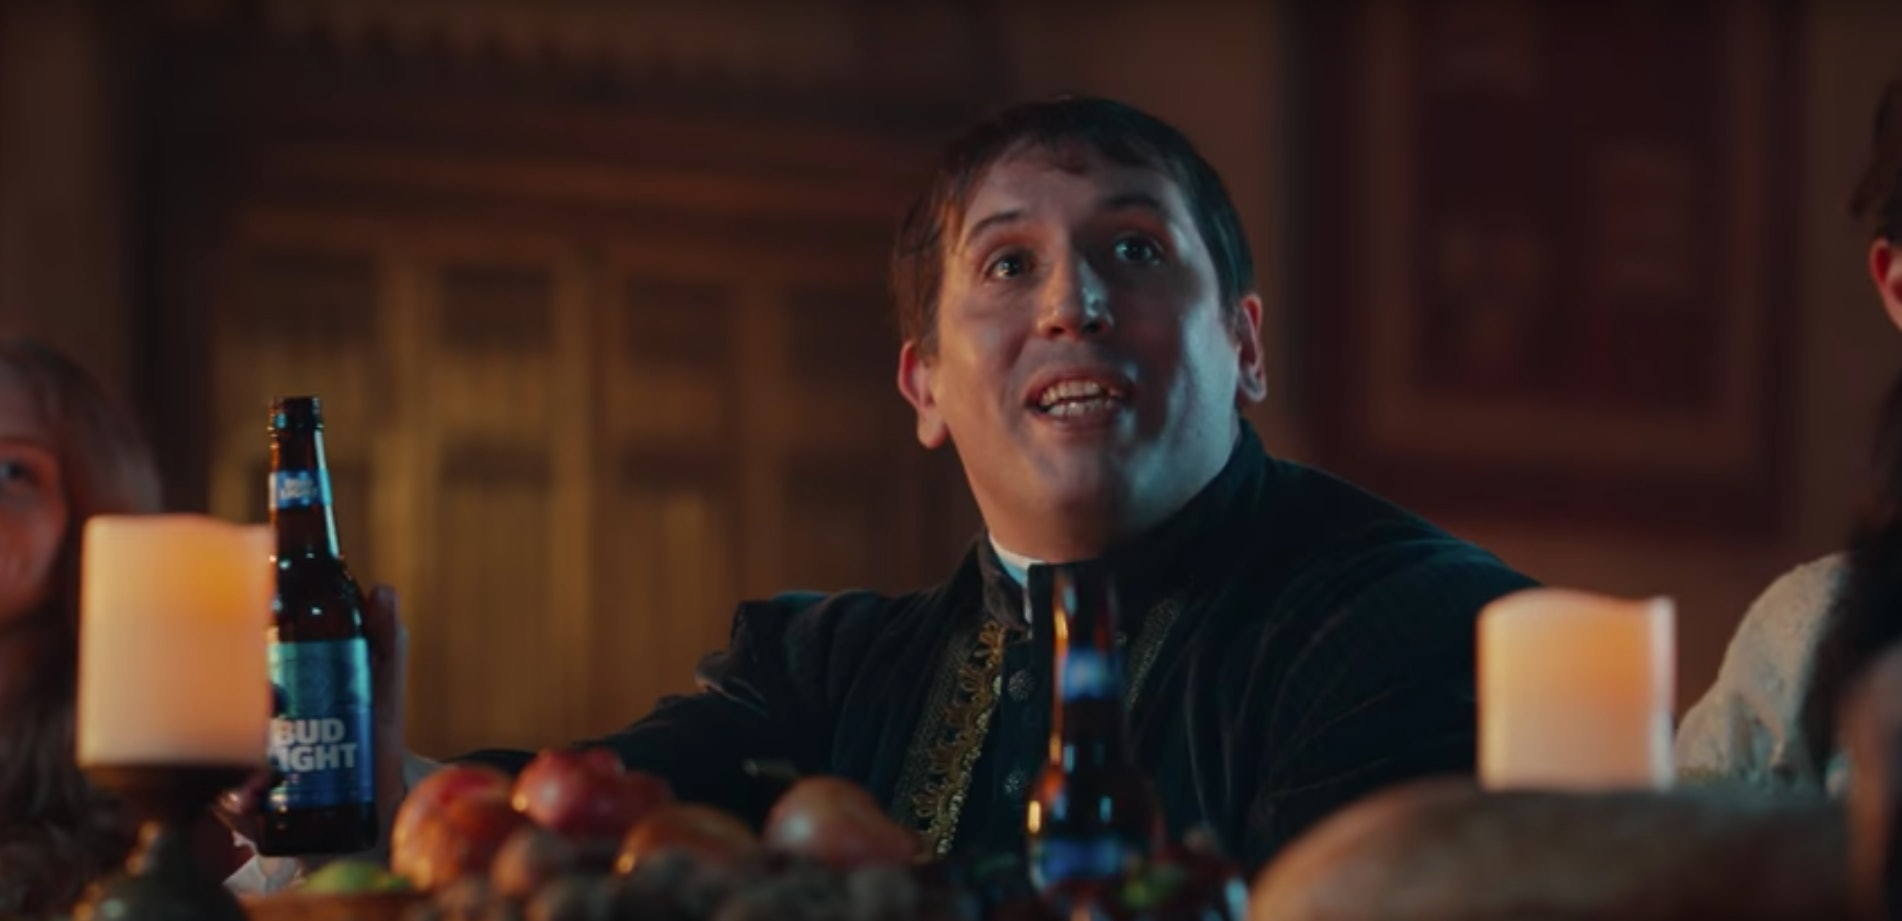 The Bud Light Super Bowl Commercial Has Everyone Talking Nonsense